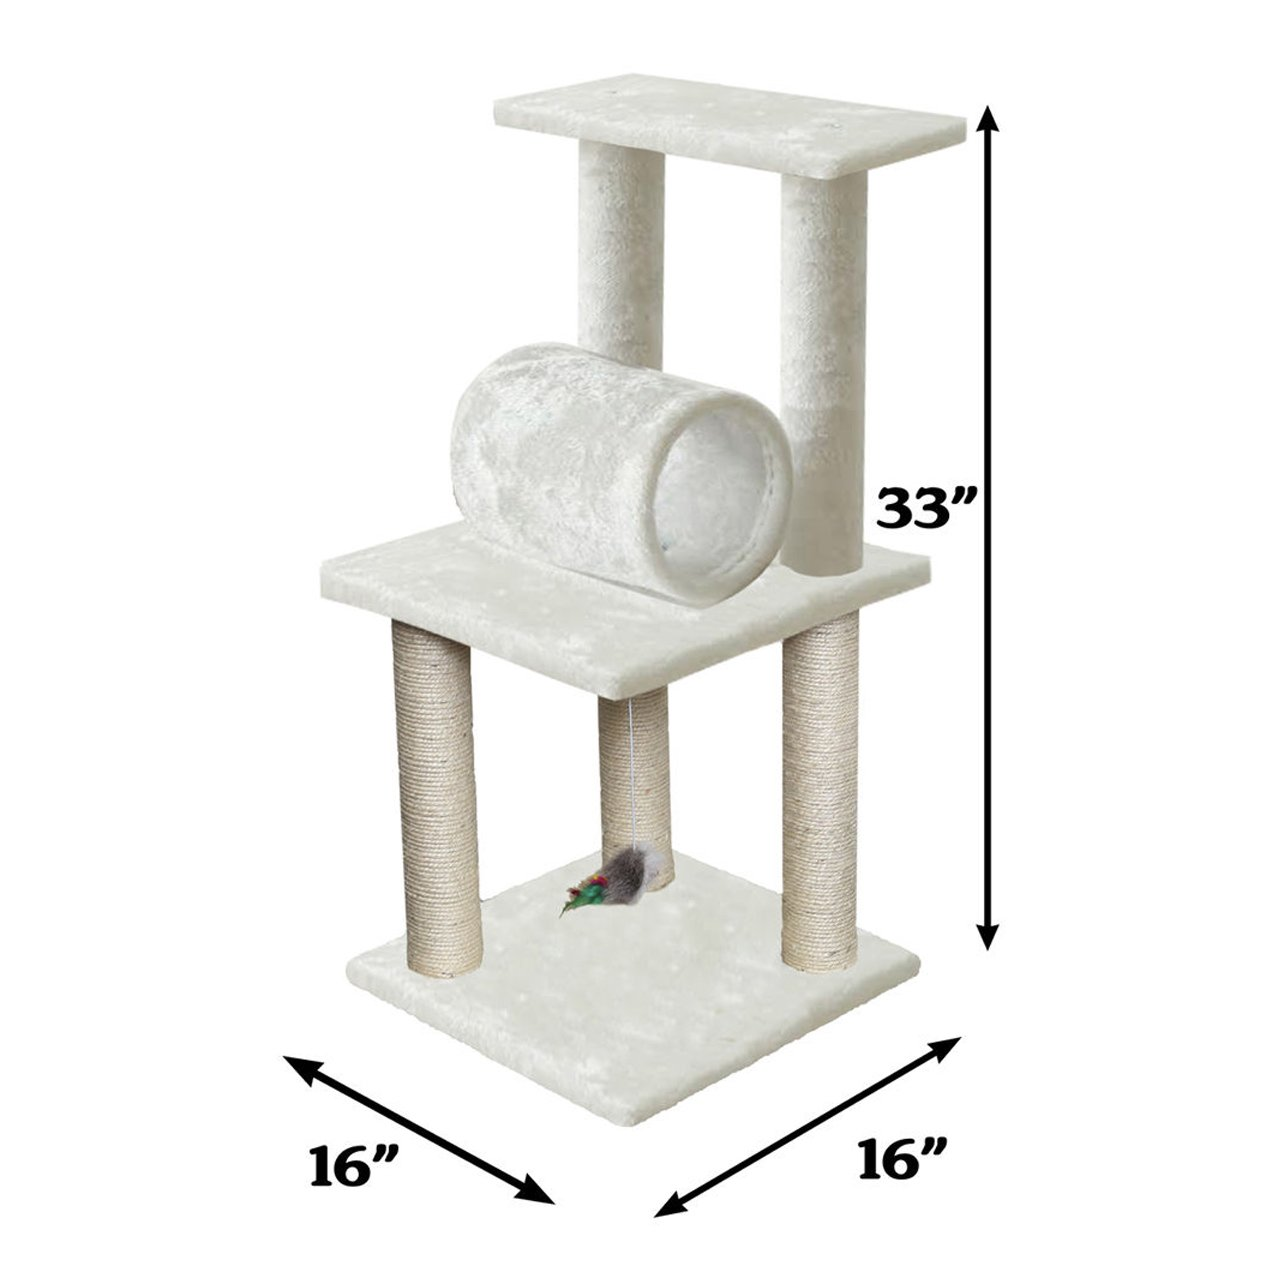 33 White Pet Cat Tree Play Tower Bed Furniture Scratch Post Tunnel Top Mouse toy notch by Unbranded by na (Image #2)